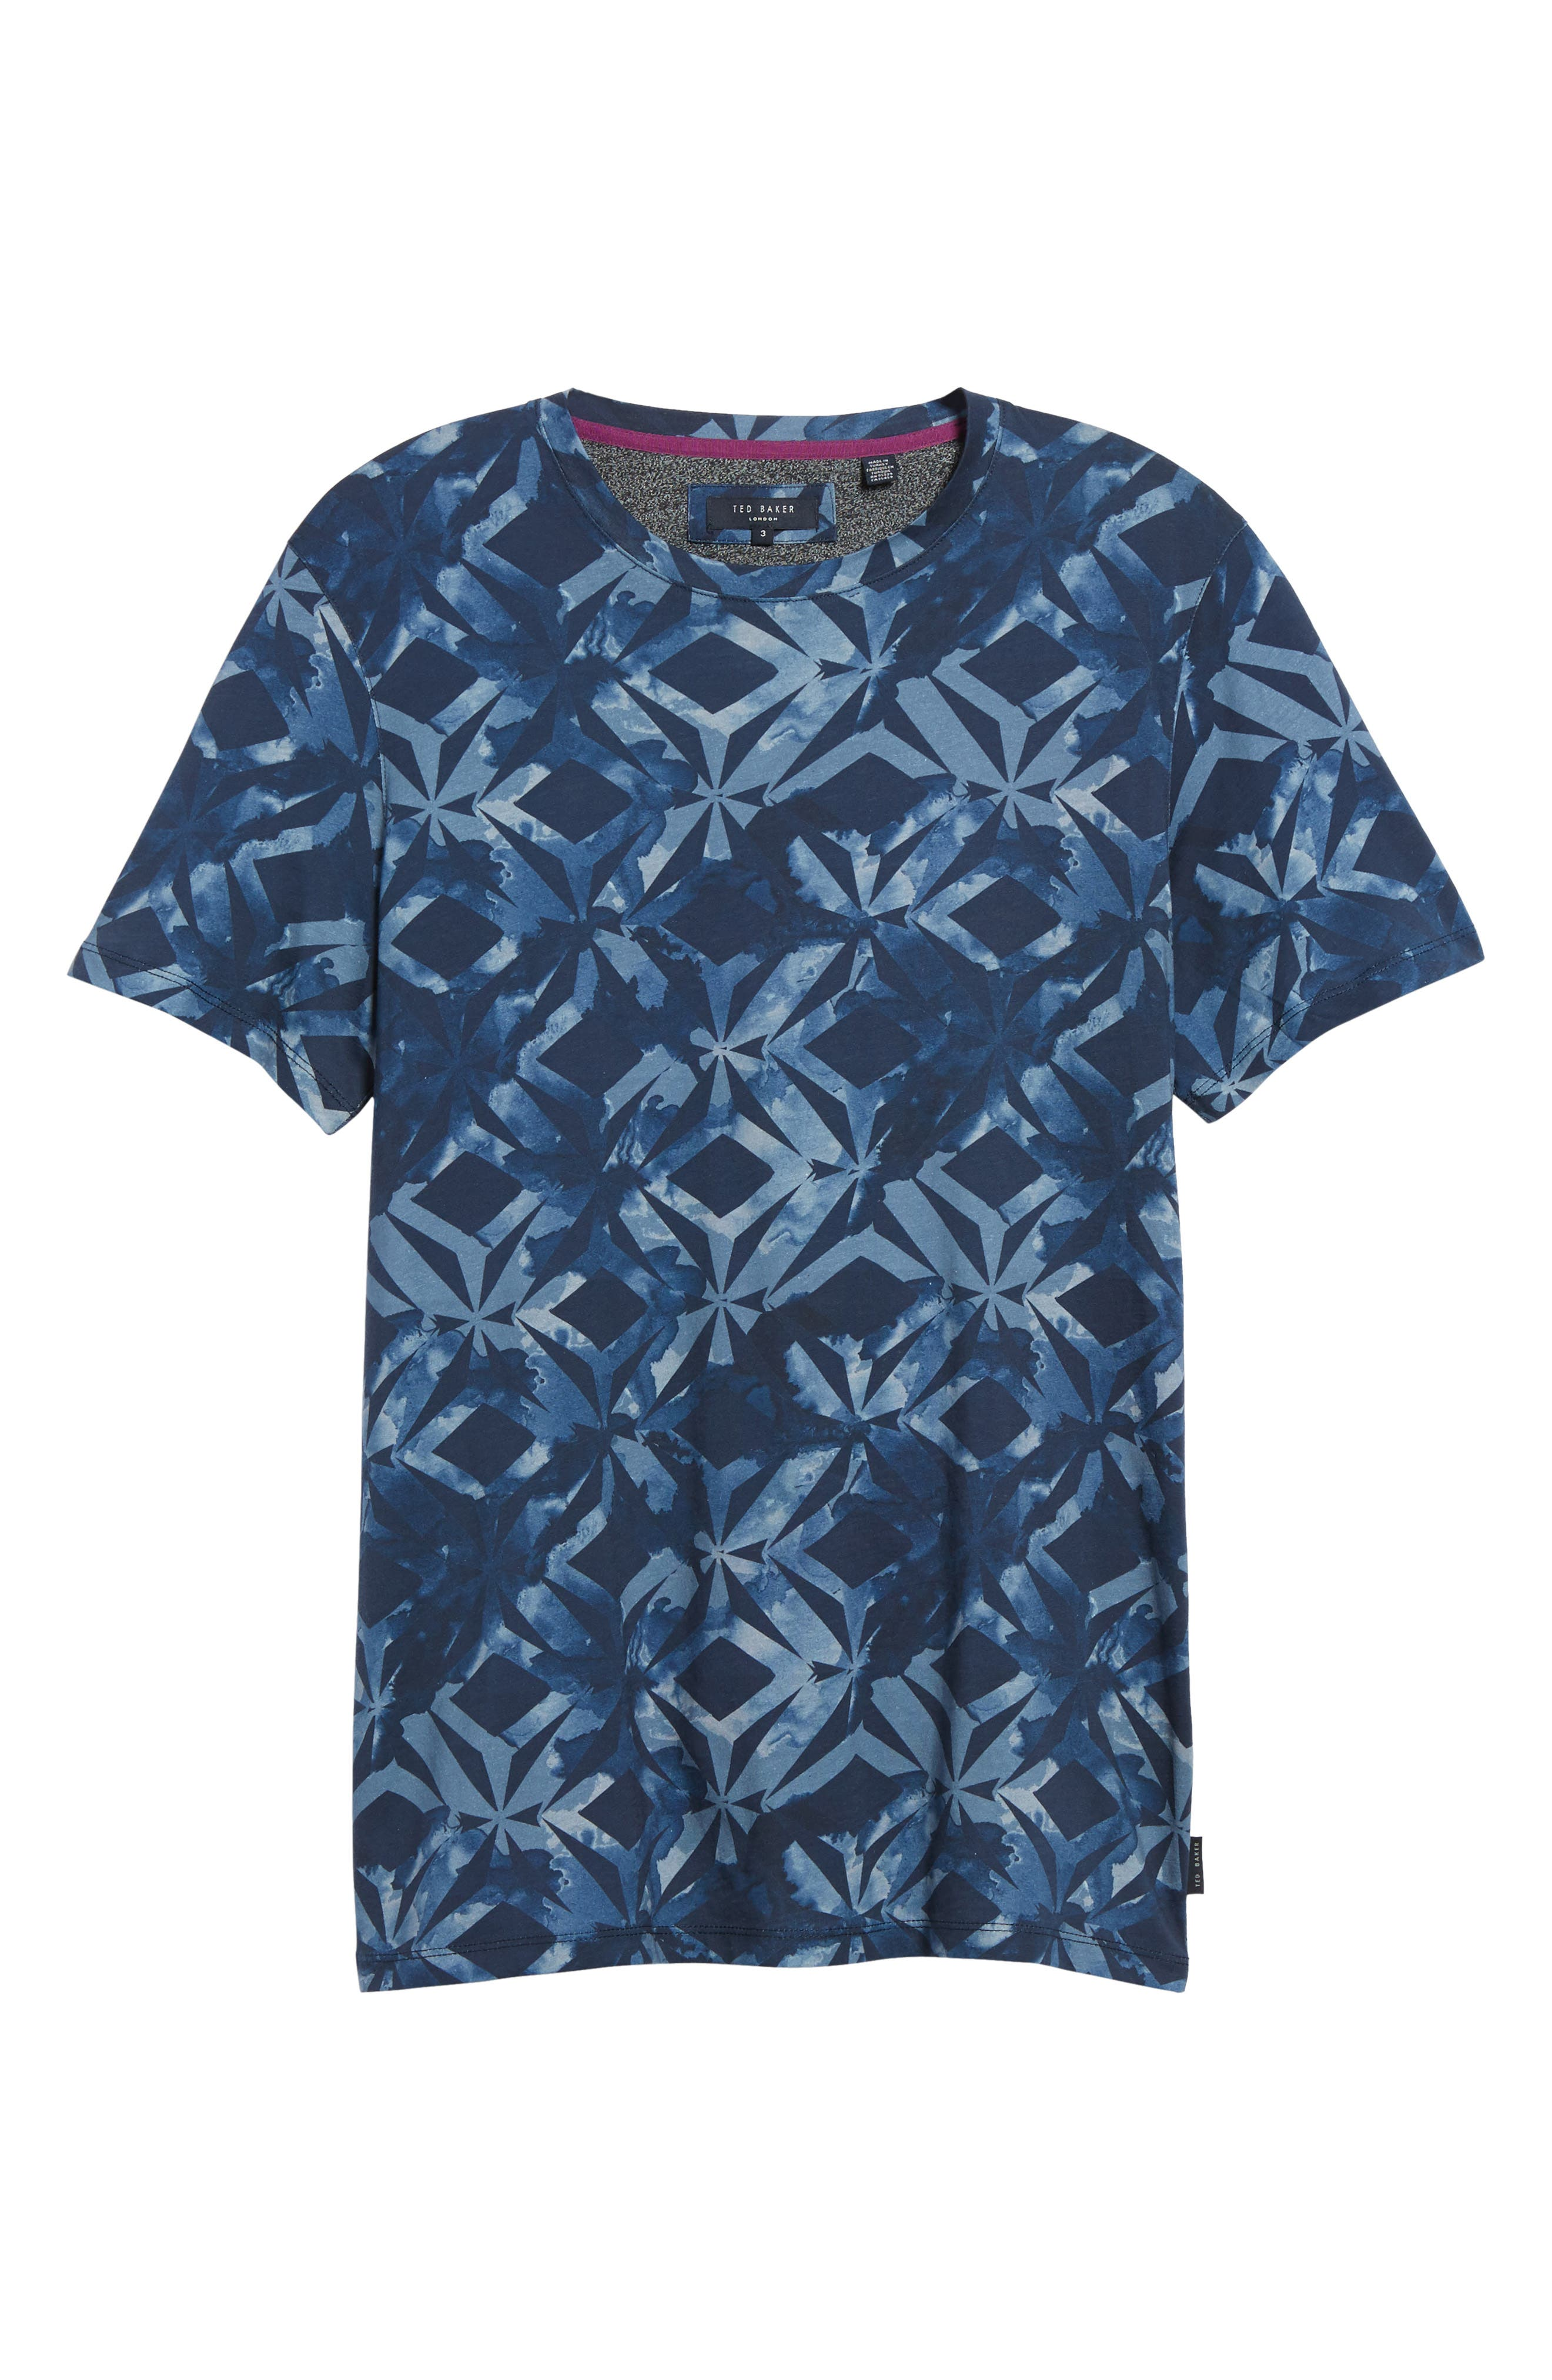 Woof Batik Print T-Shirt,                             Alternate thumbnail 6, color,                             Dark Blue